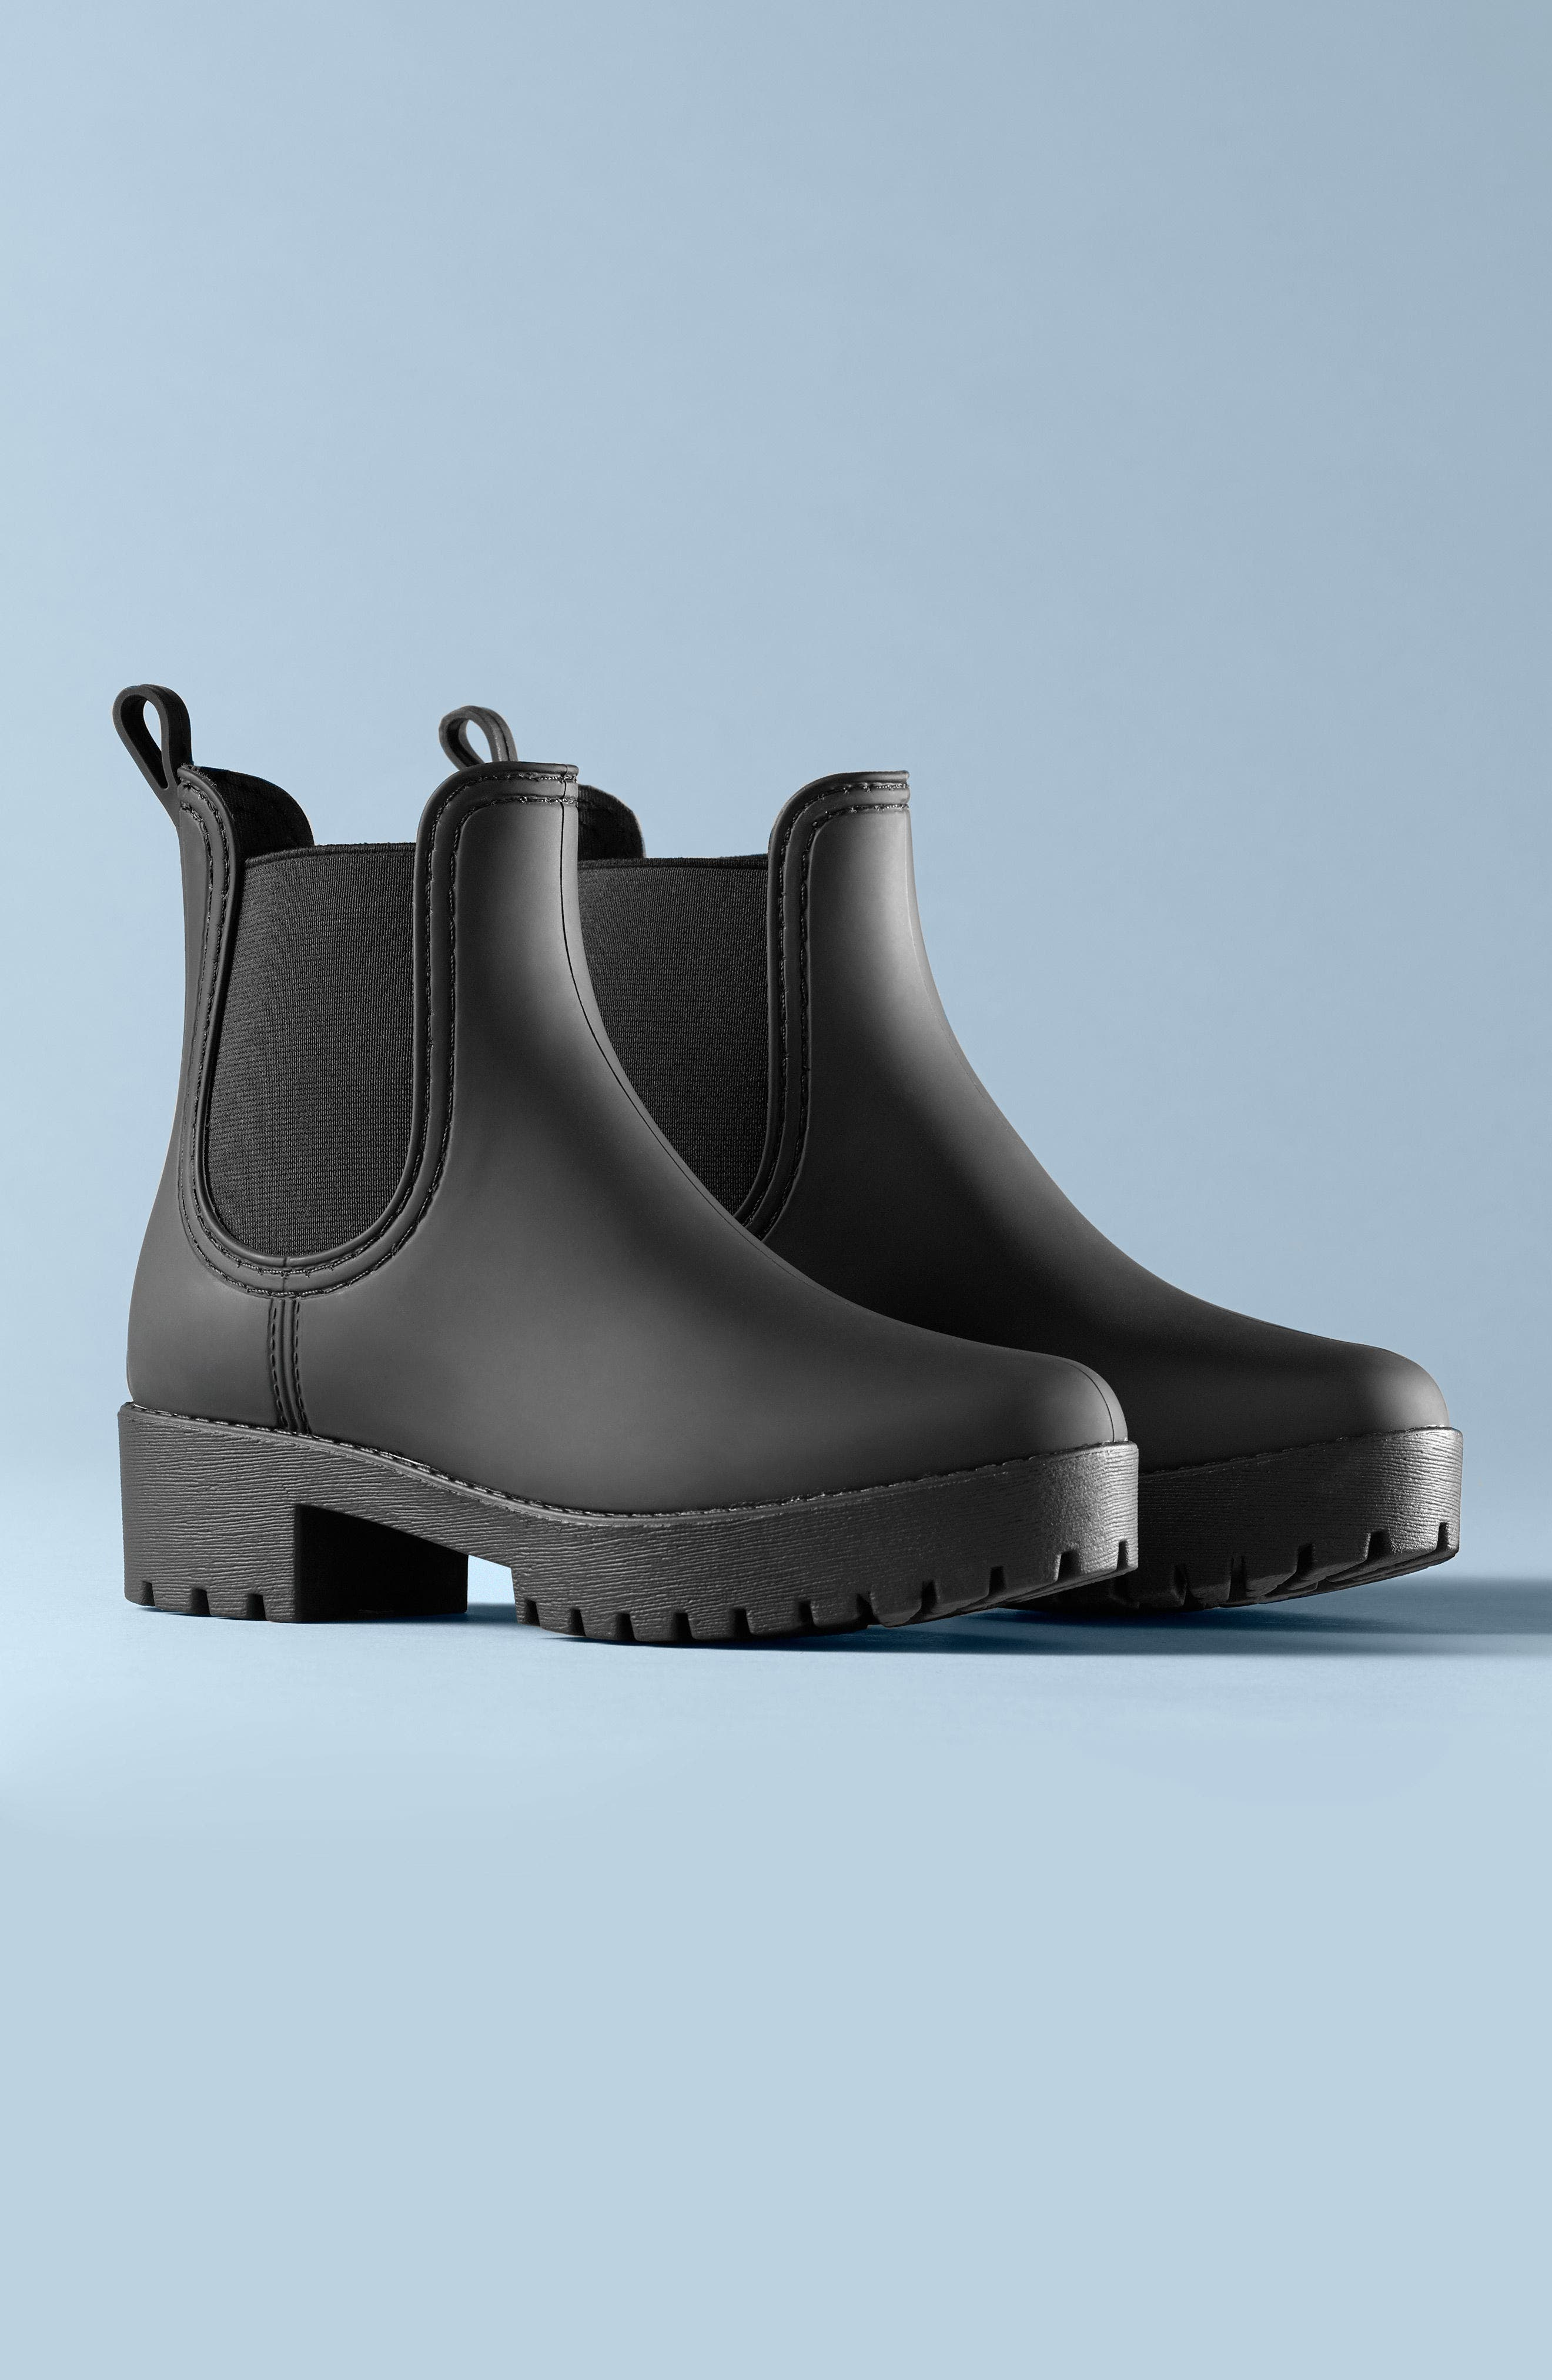 Cloudy Waterproof Chelsea Rain Boot,                             Alternate thumbnail 5, color,                             BLACK MATTE BLACK